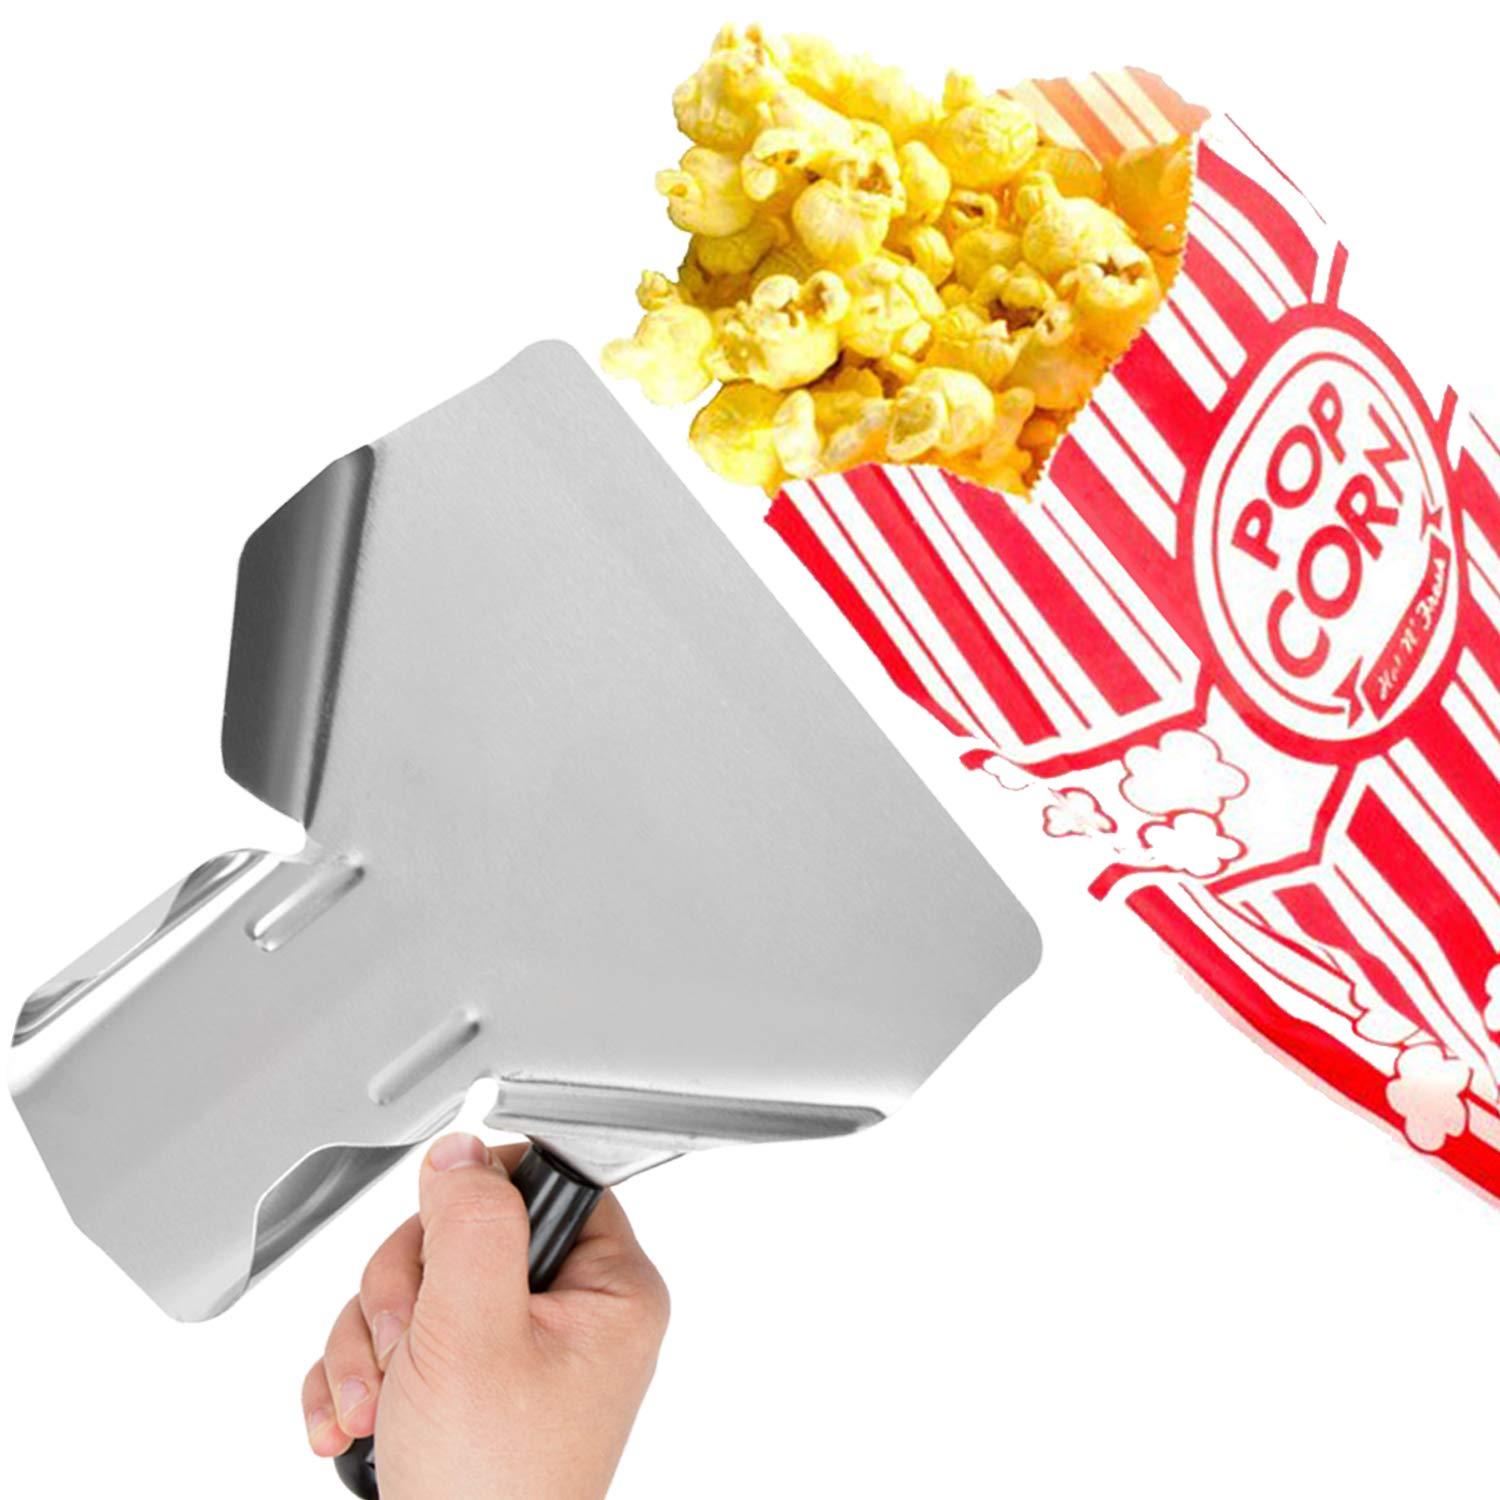 Stainless Steel Popcorn Scoop - Carnival King 1oz Popcorn Bags For Party (pack of 100) - Popcorn Scooper And Bags Bundle - Complimentary CUSINIUM Coasters, Ebook